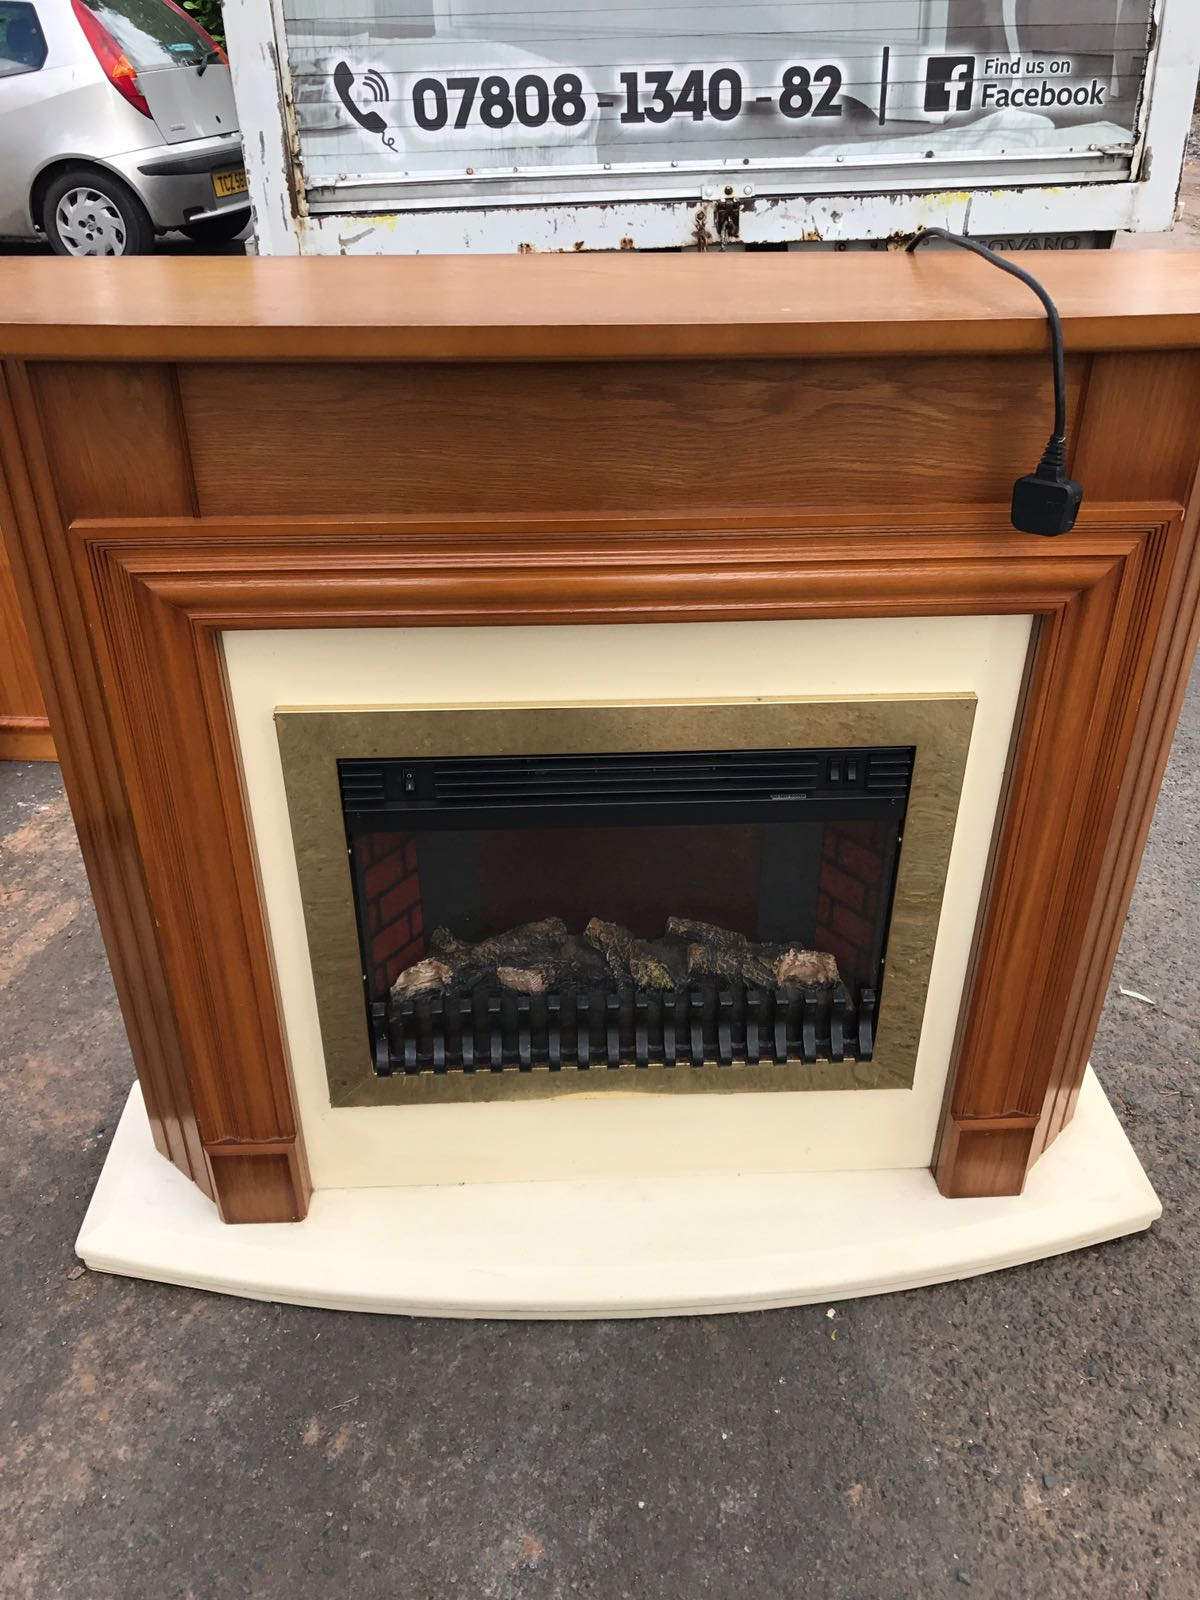 Very Nice Fireplace With A Built In Electric Fire Whelans Quality Used Furniture